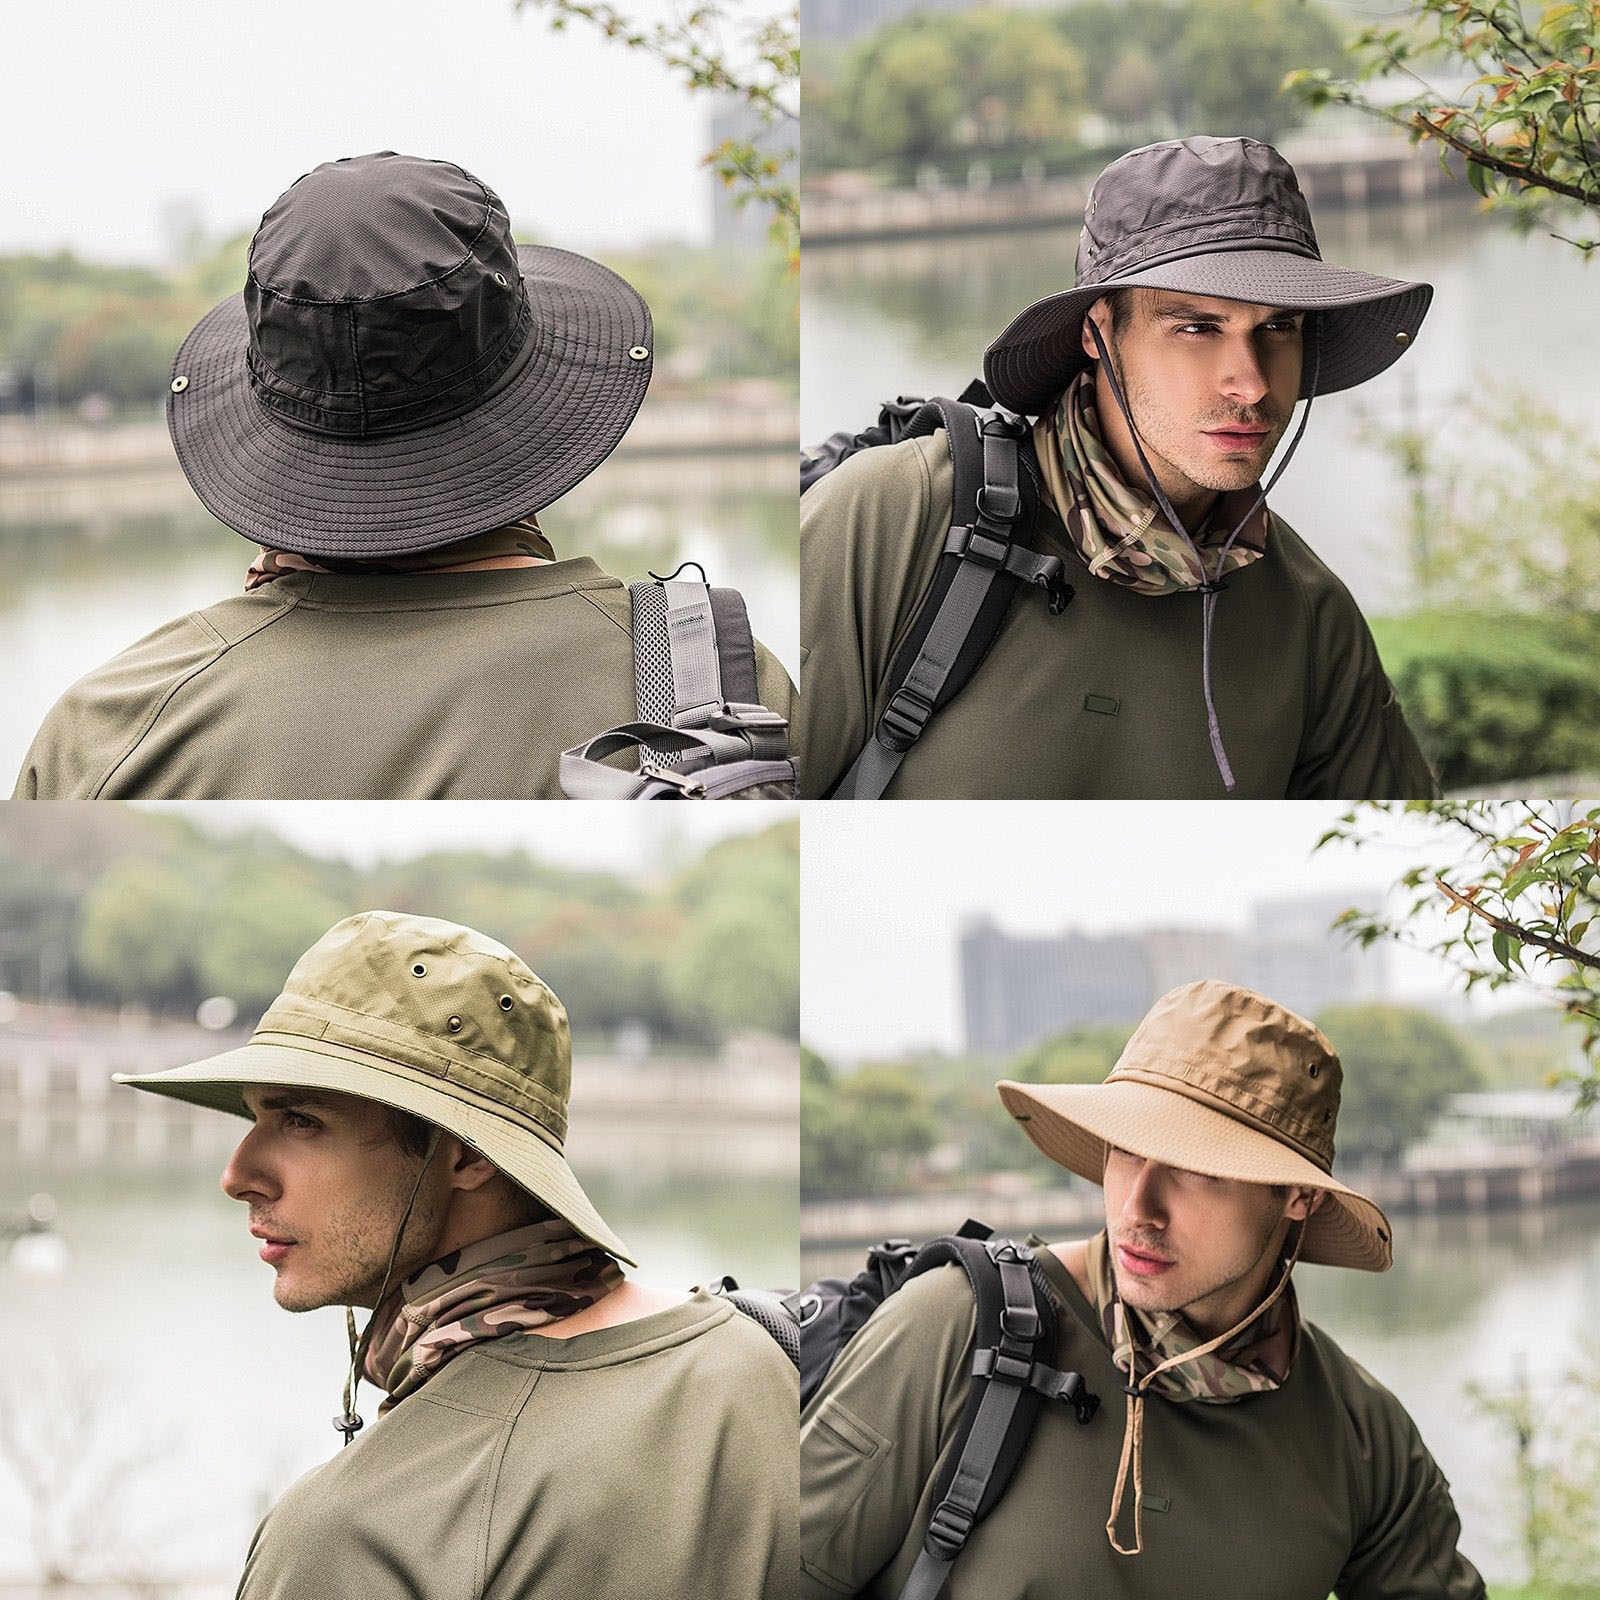 4c05ed8a3f8 New Hot Boonie Bucket Hat Fisherman Wide Brim Safari Cap Pure Cap Unisex  Sun Hats Lace